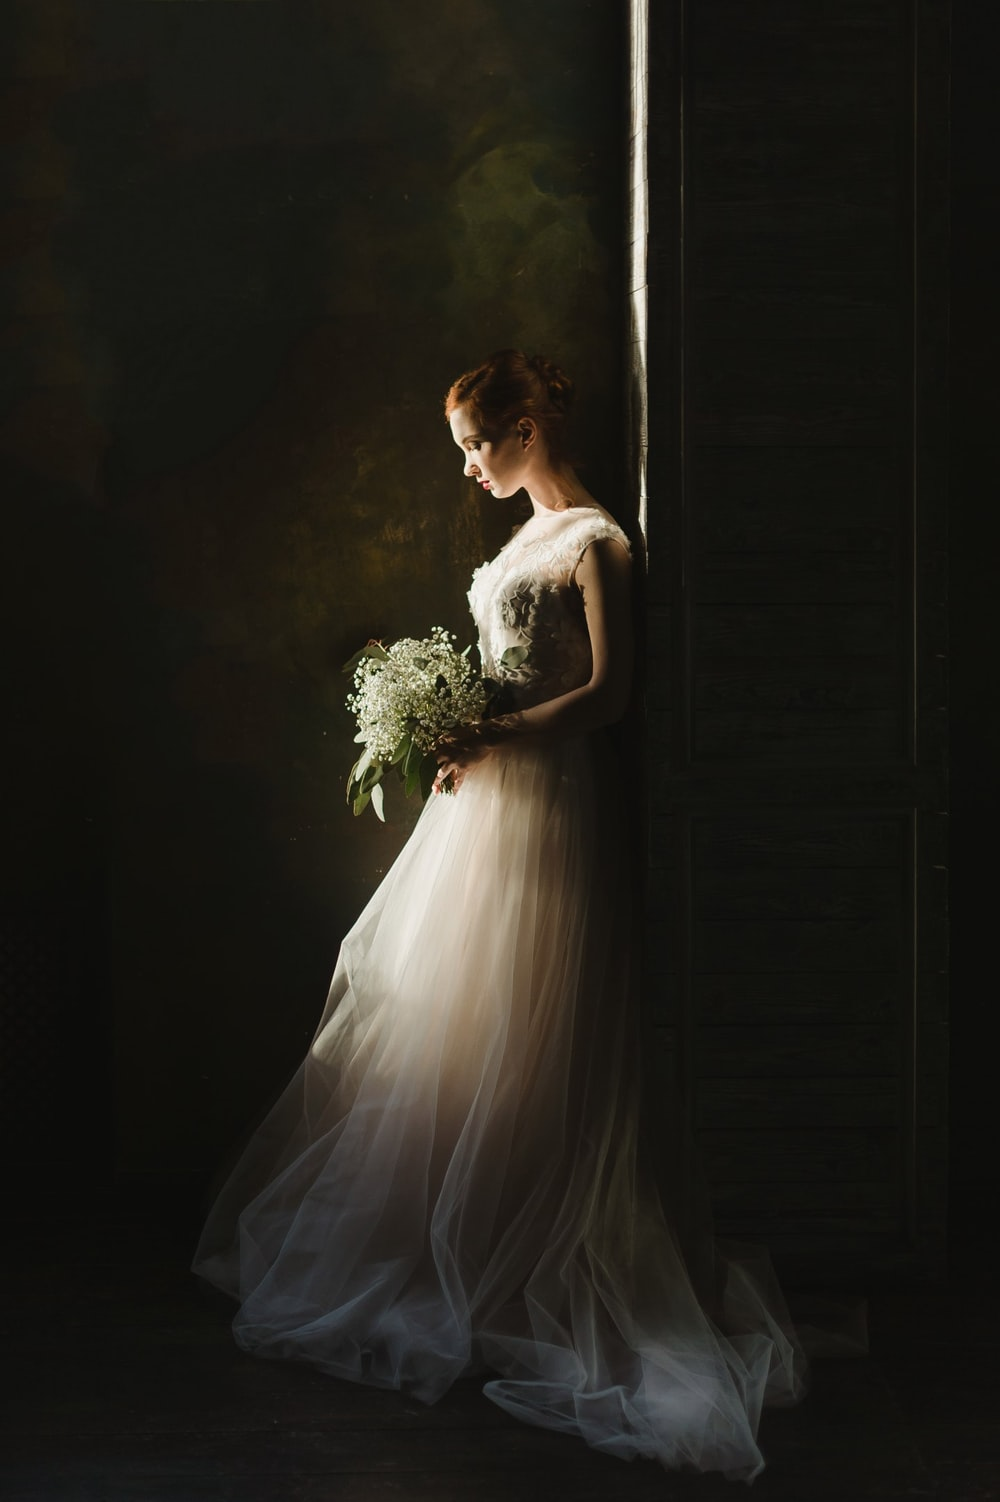 woman wearing wedding gown white holding bouquet